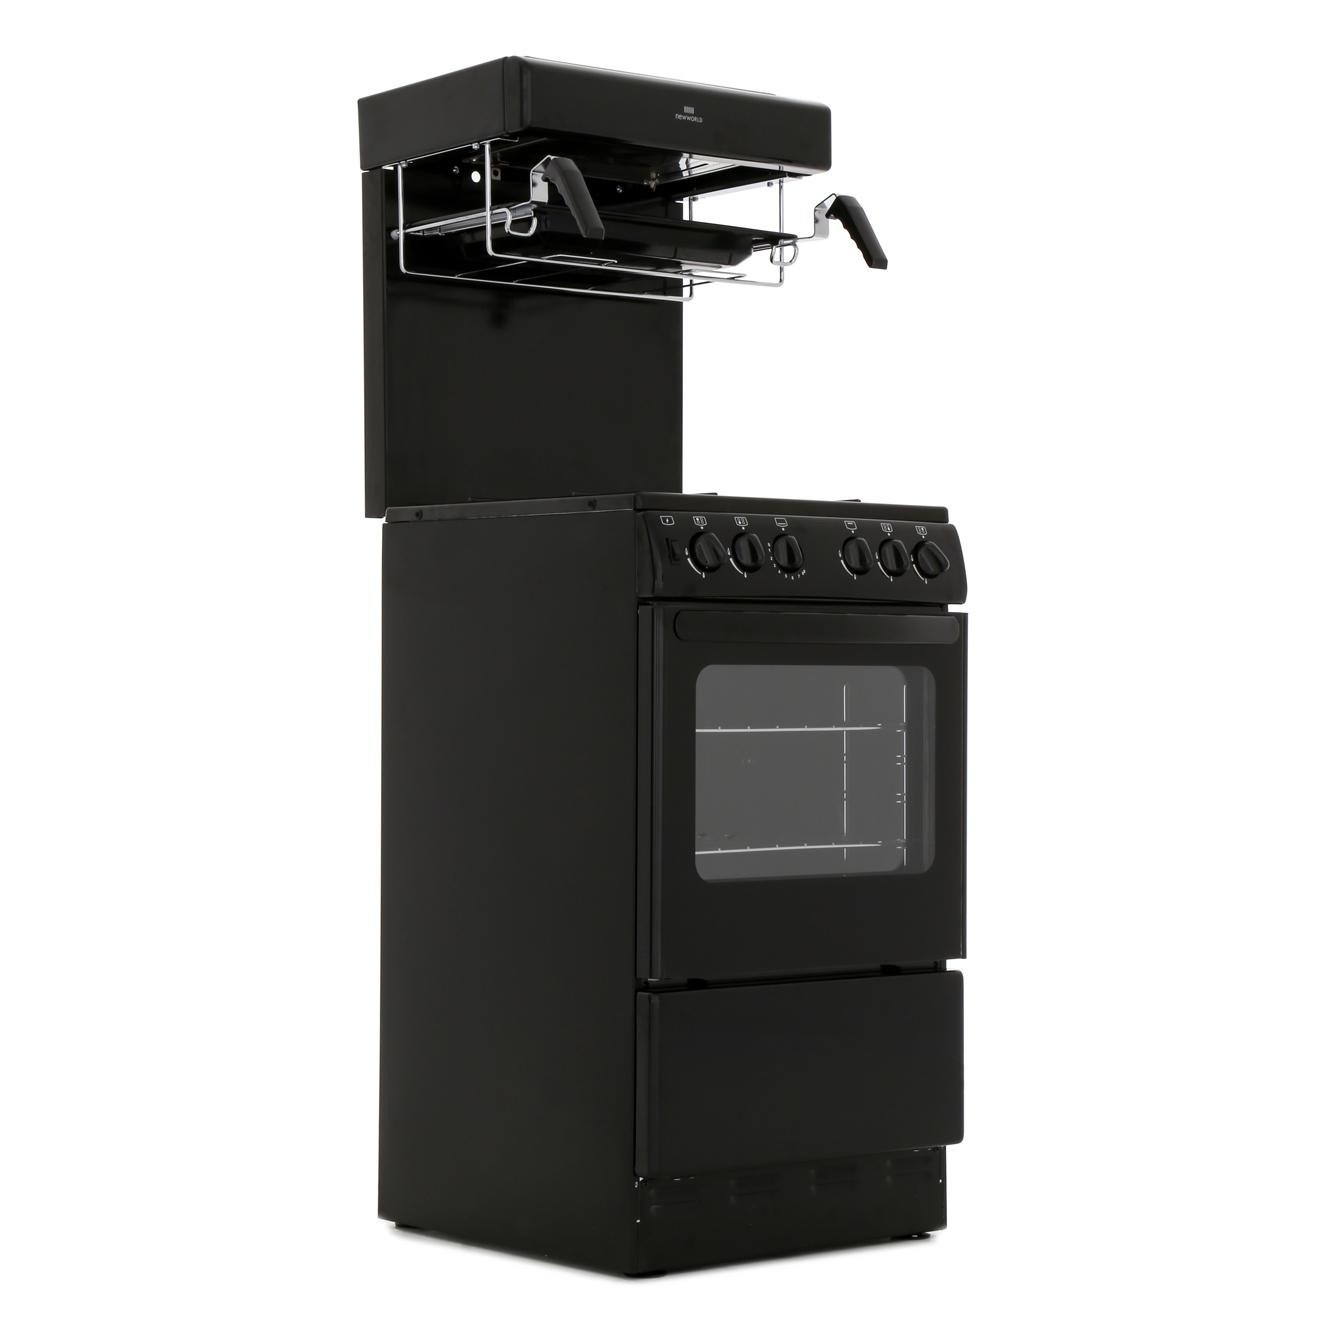 new world nw50thlg freestanding 50cm gas cooker high level. Black Bedroom Furniture Sets. Home Design Ideas